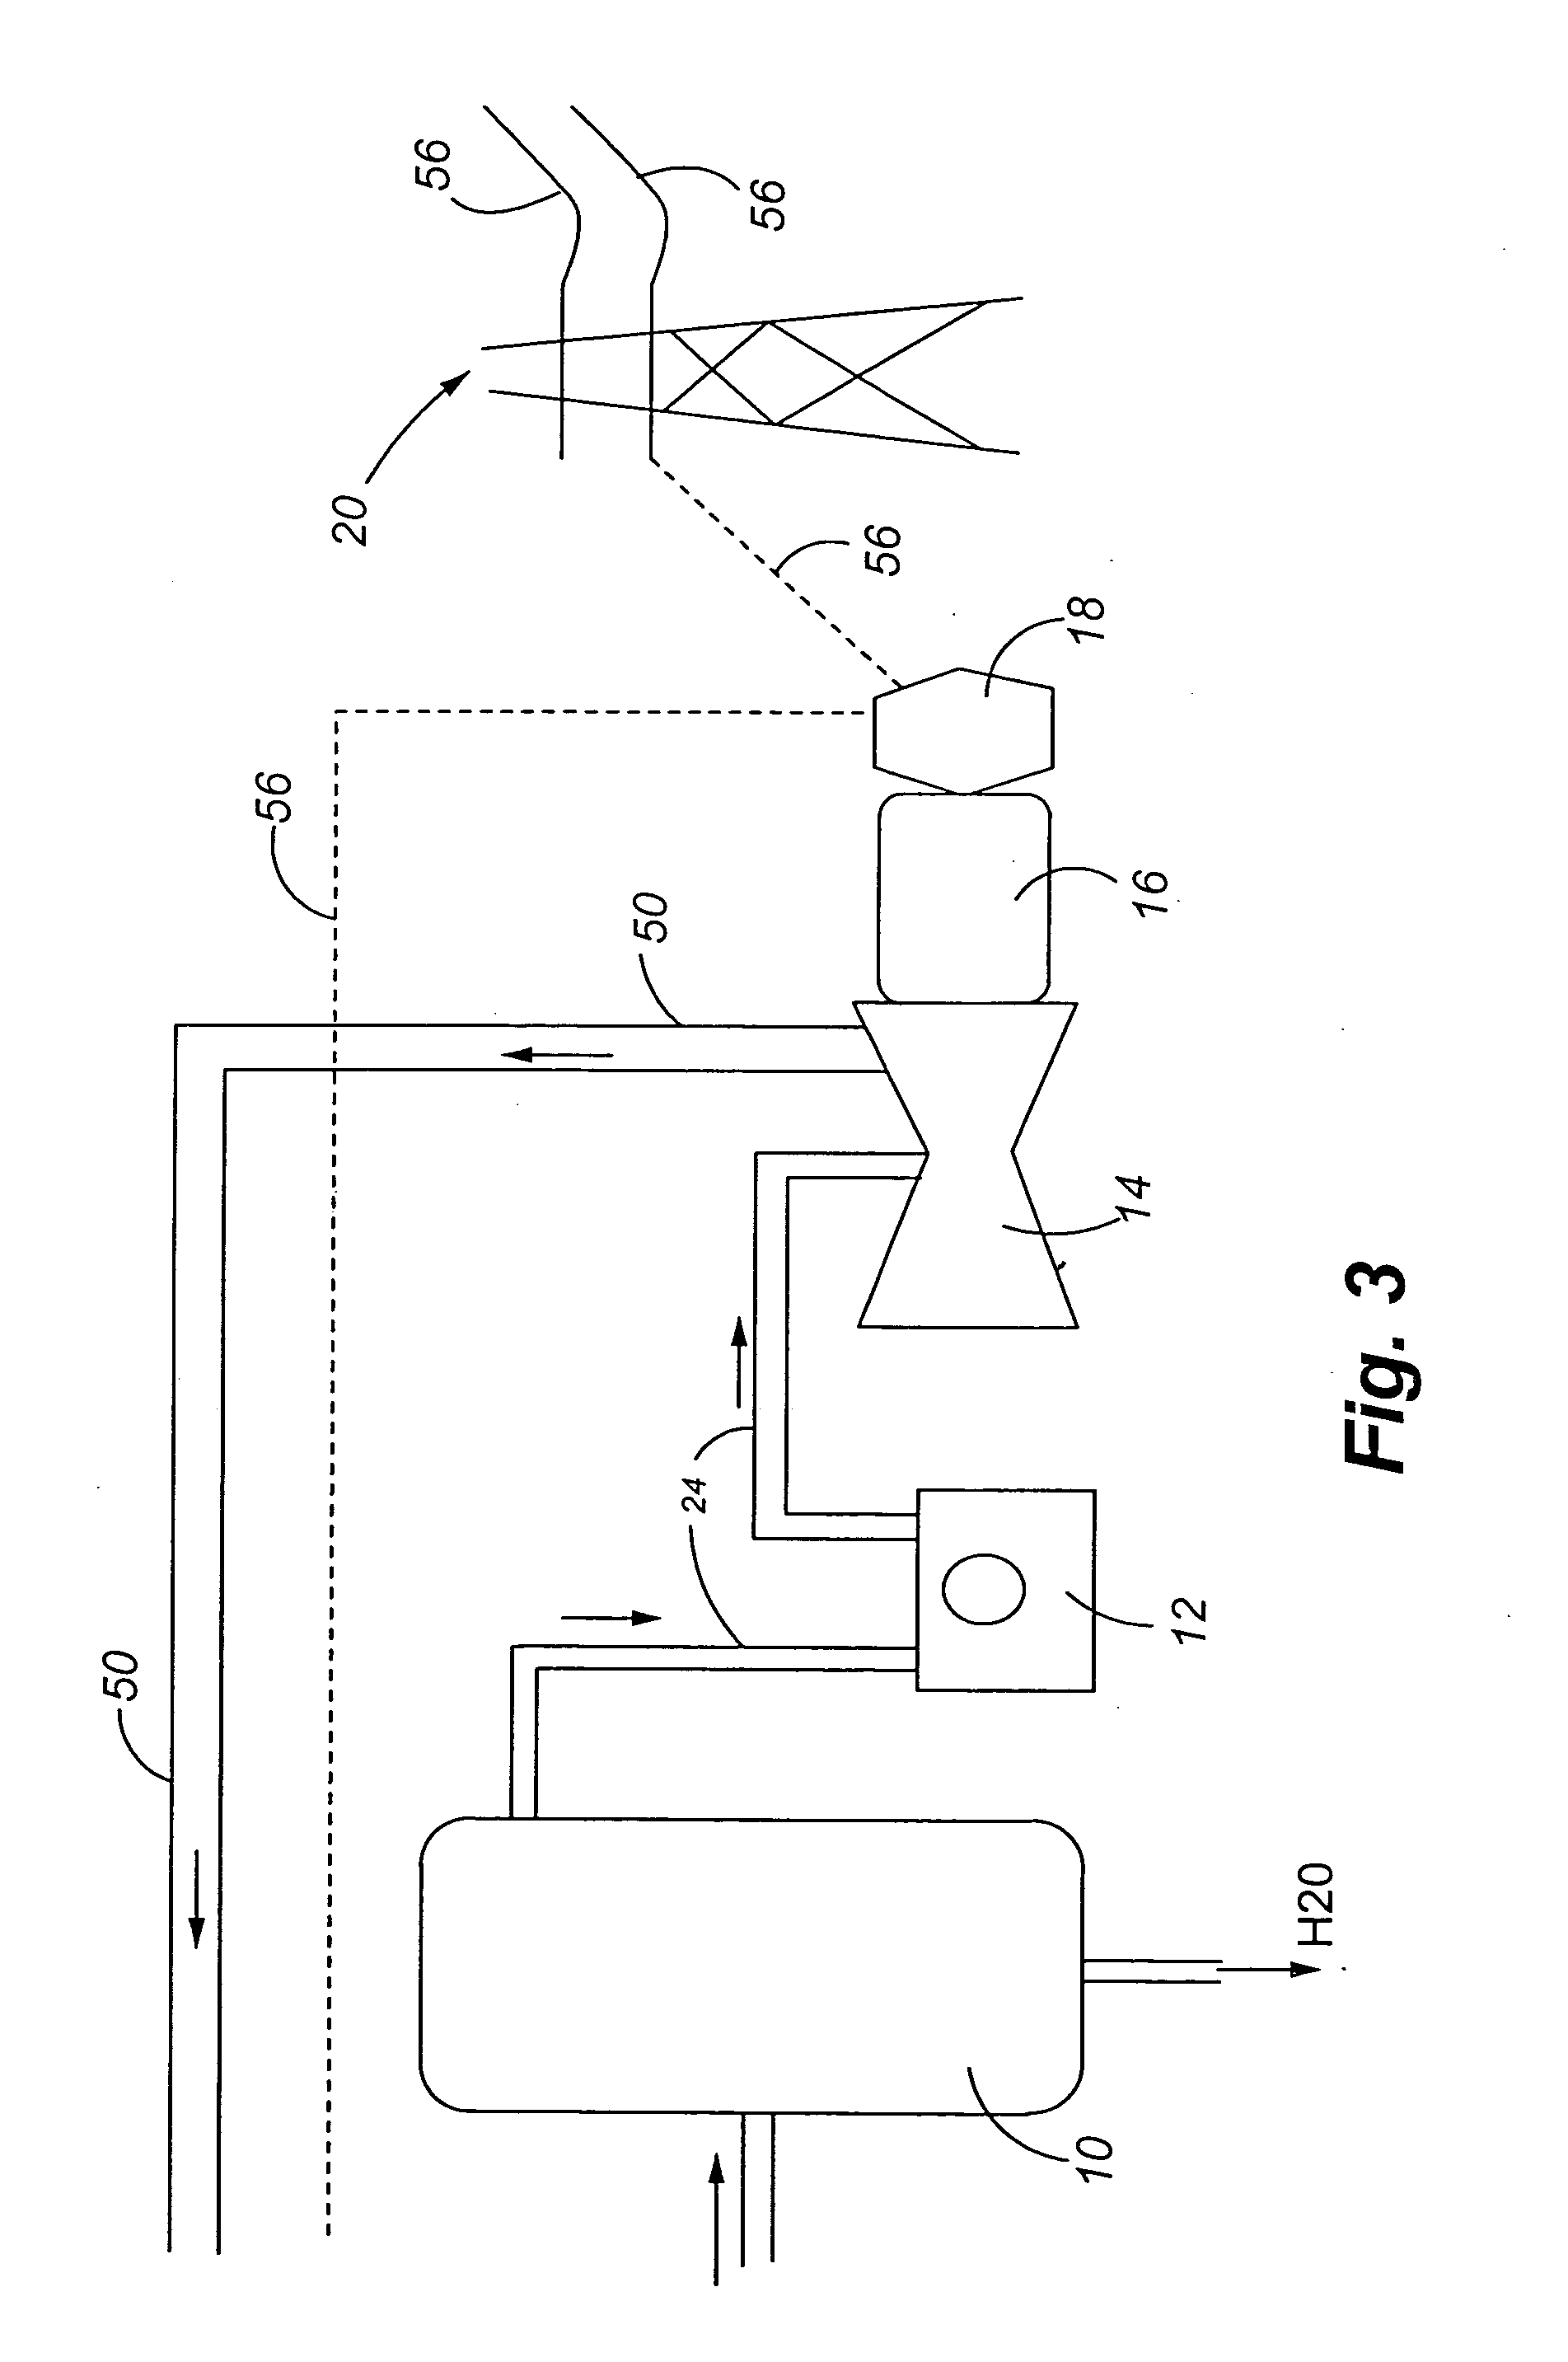 patent us20060054318 method and apparatus for generating patent drawing